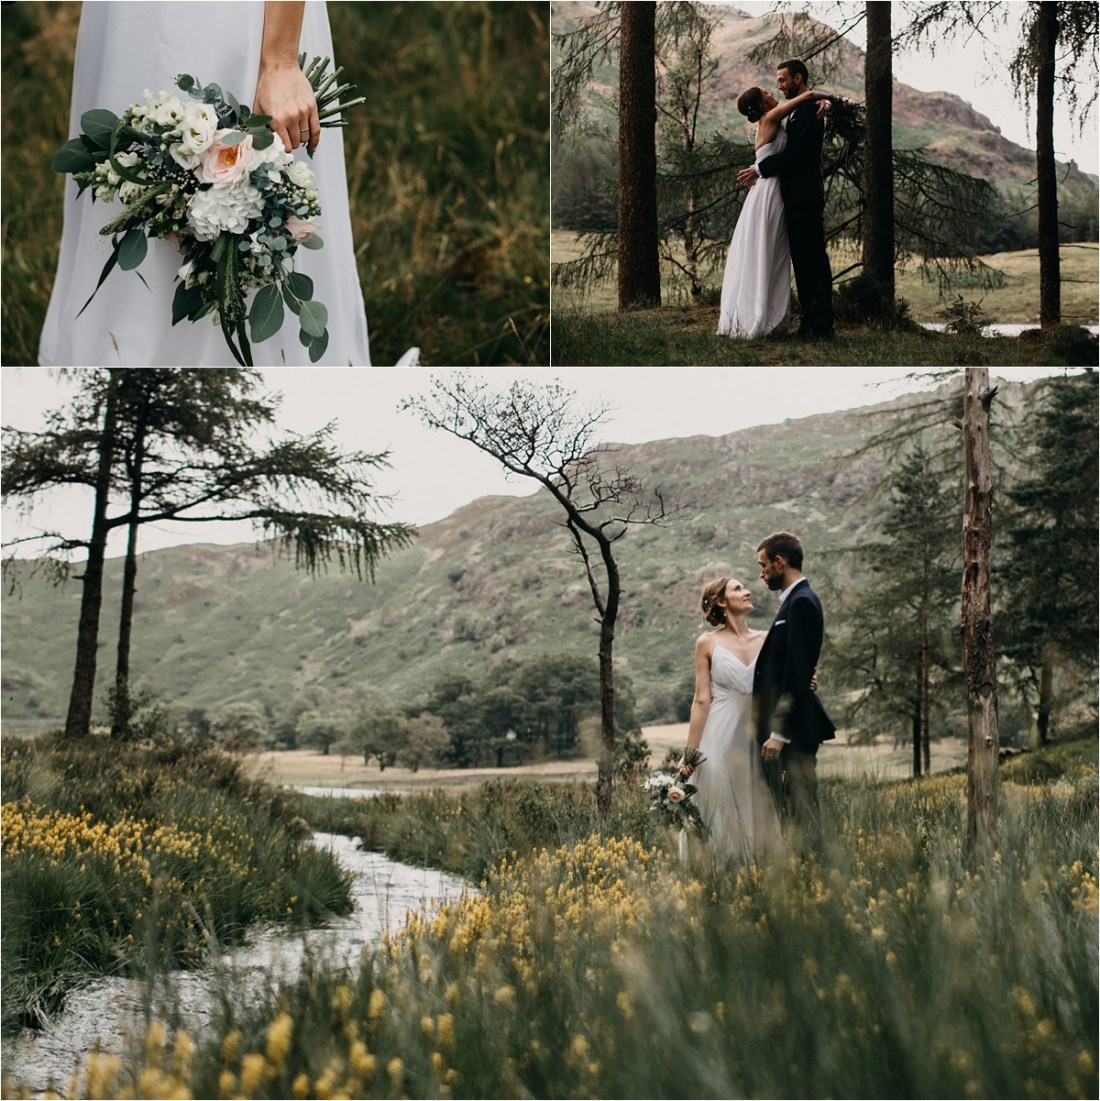 Intimate wedding at Blea Tarn in the Lake District in England. Photos by Unfurl Photography